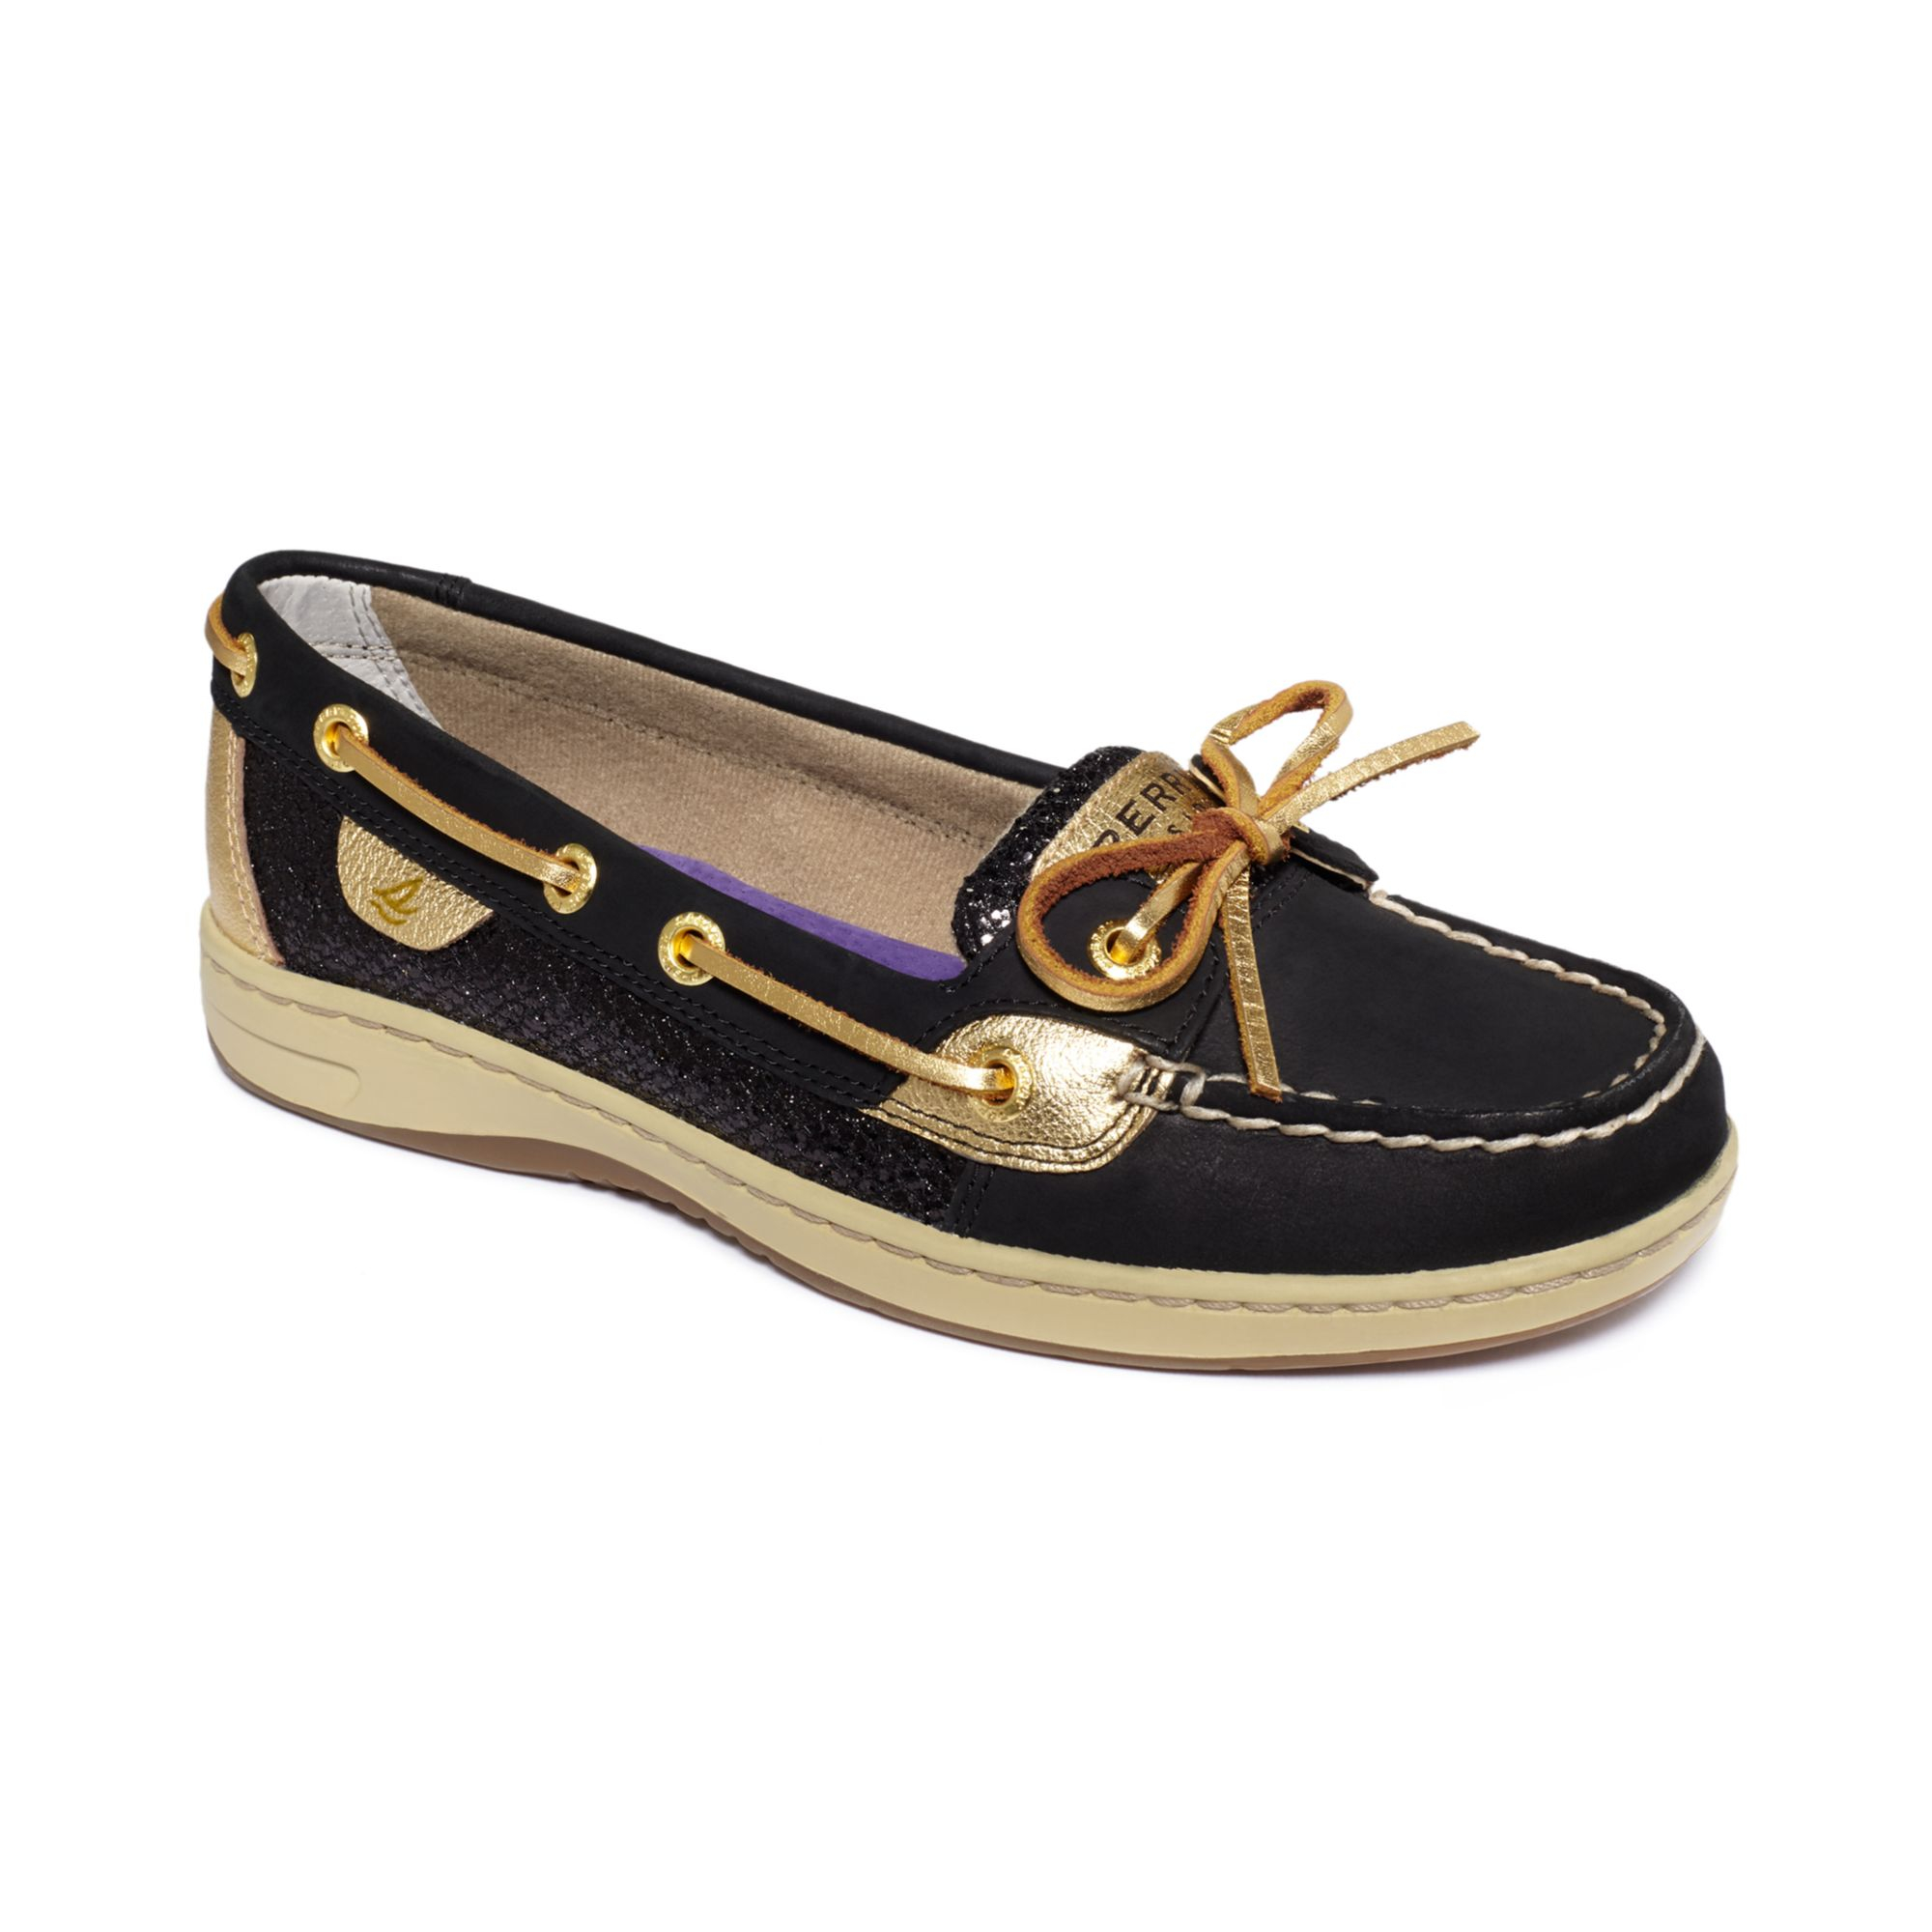 Sperry Top Sider Women S Angelfish Boat Shoes In Black